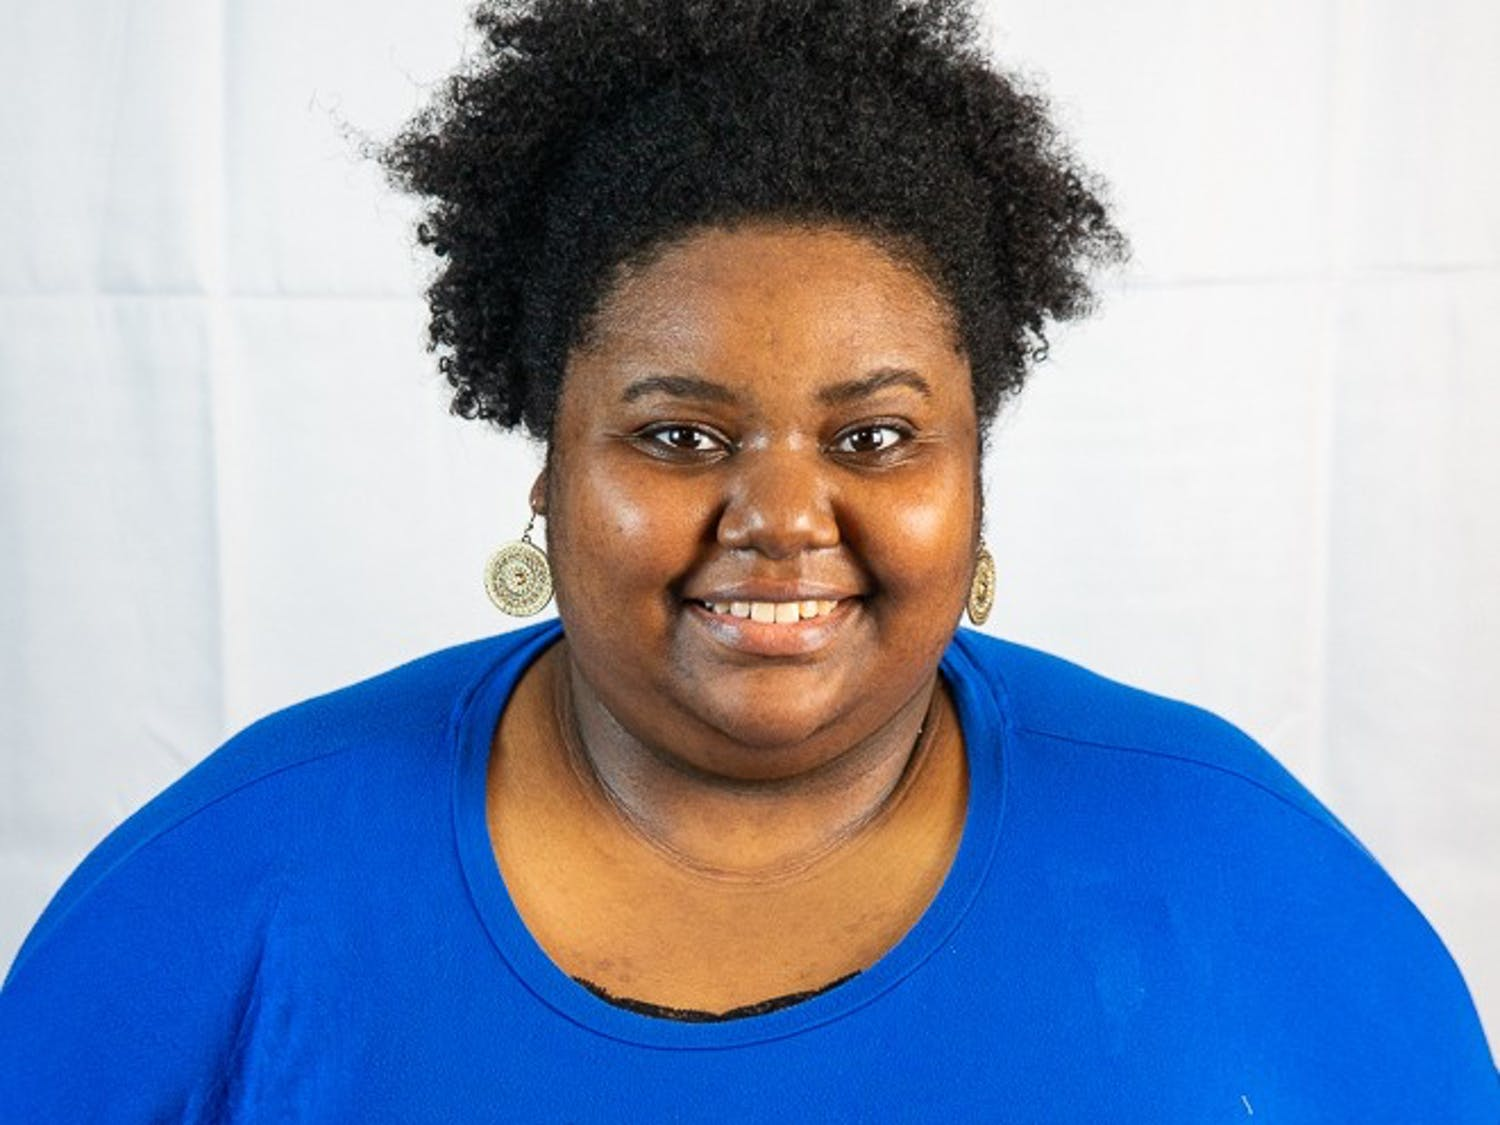 2020-2021 Assistant City & State Editor and Diversity, Equity, and Inclusion Officer Brittany McGee